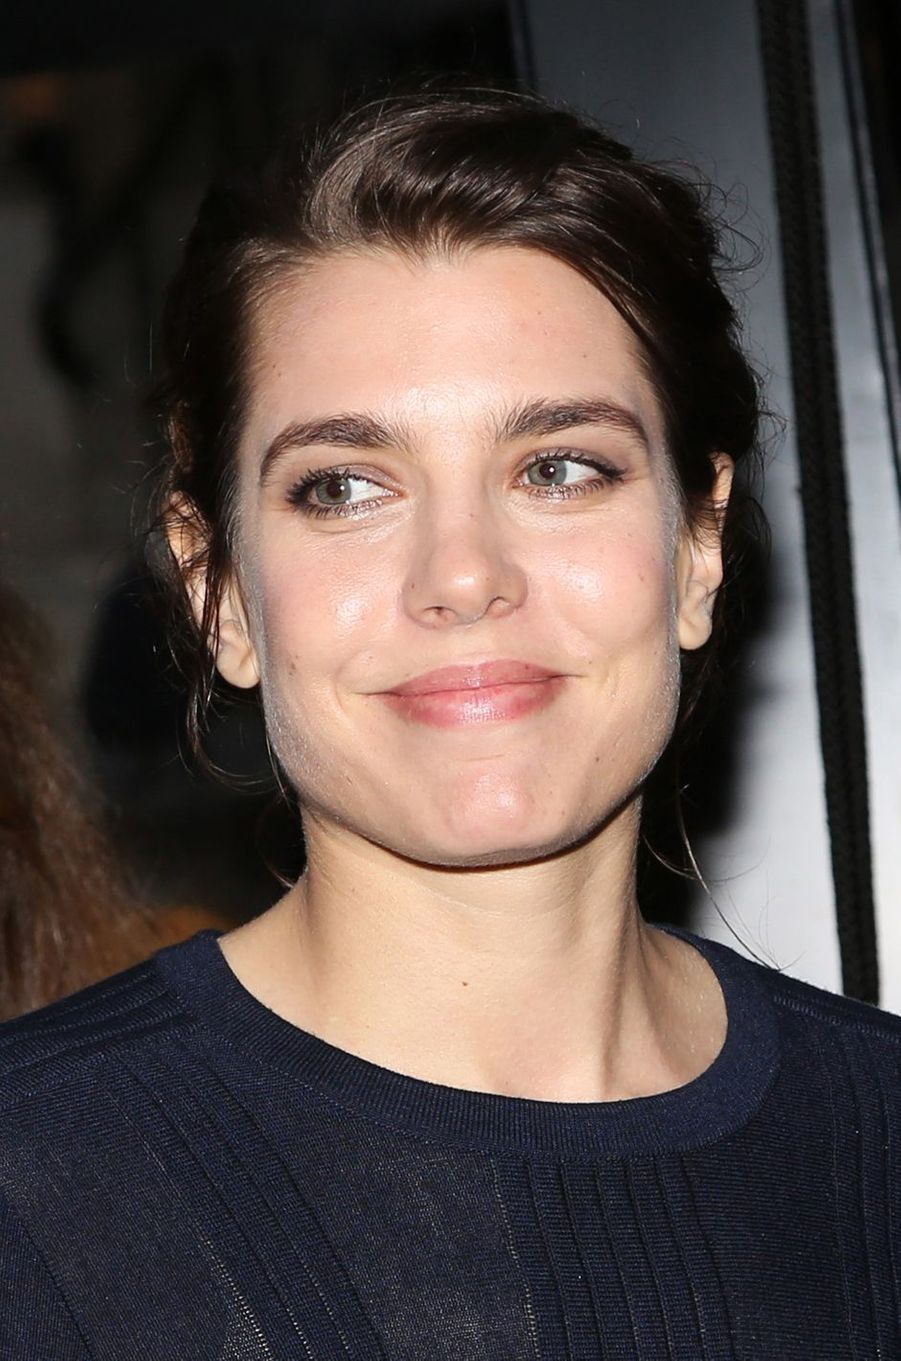 Charlotte Casiraghi à Paris, le 3 mai 2017